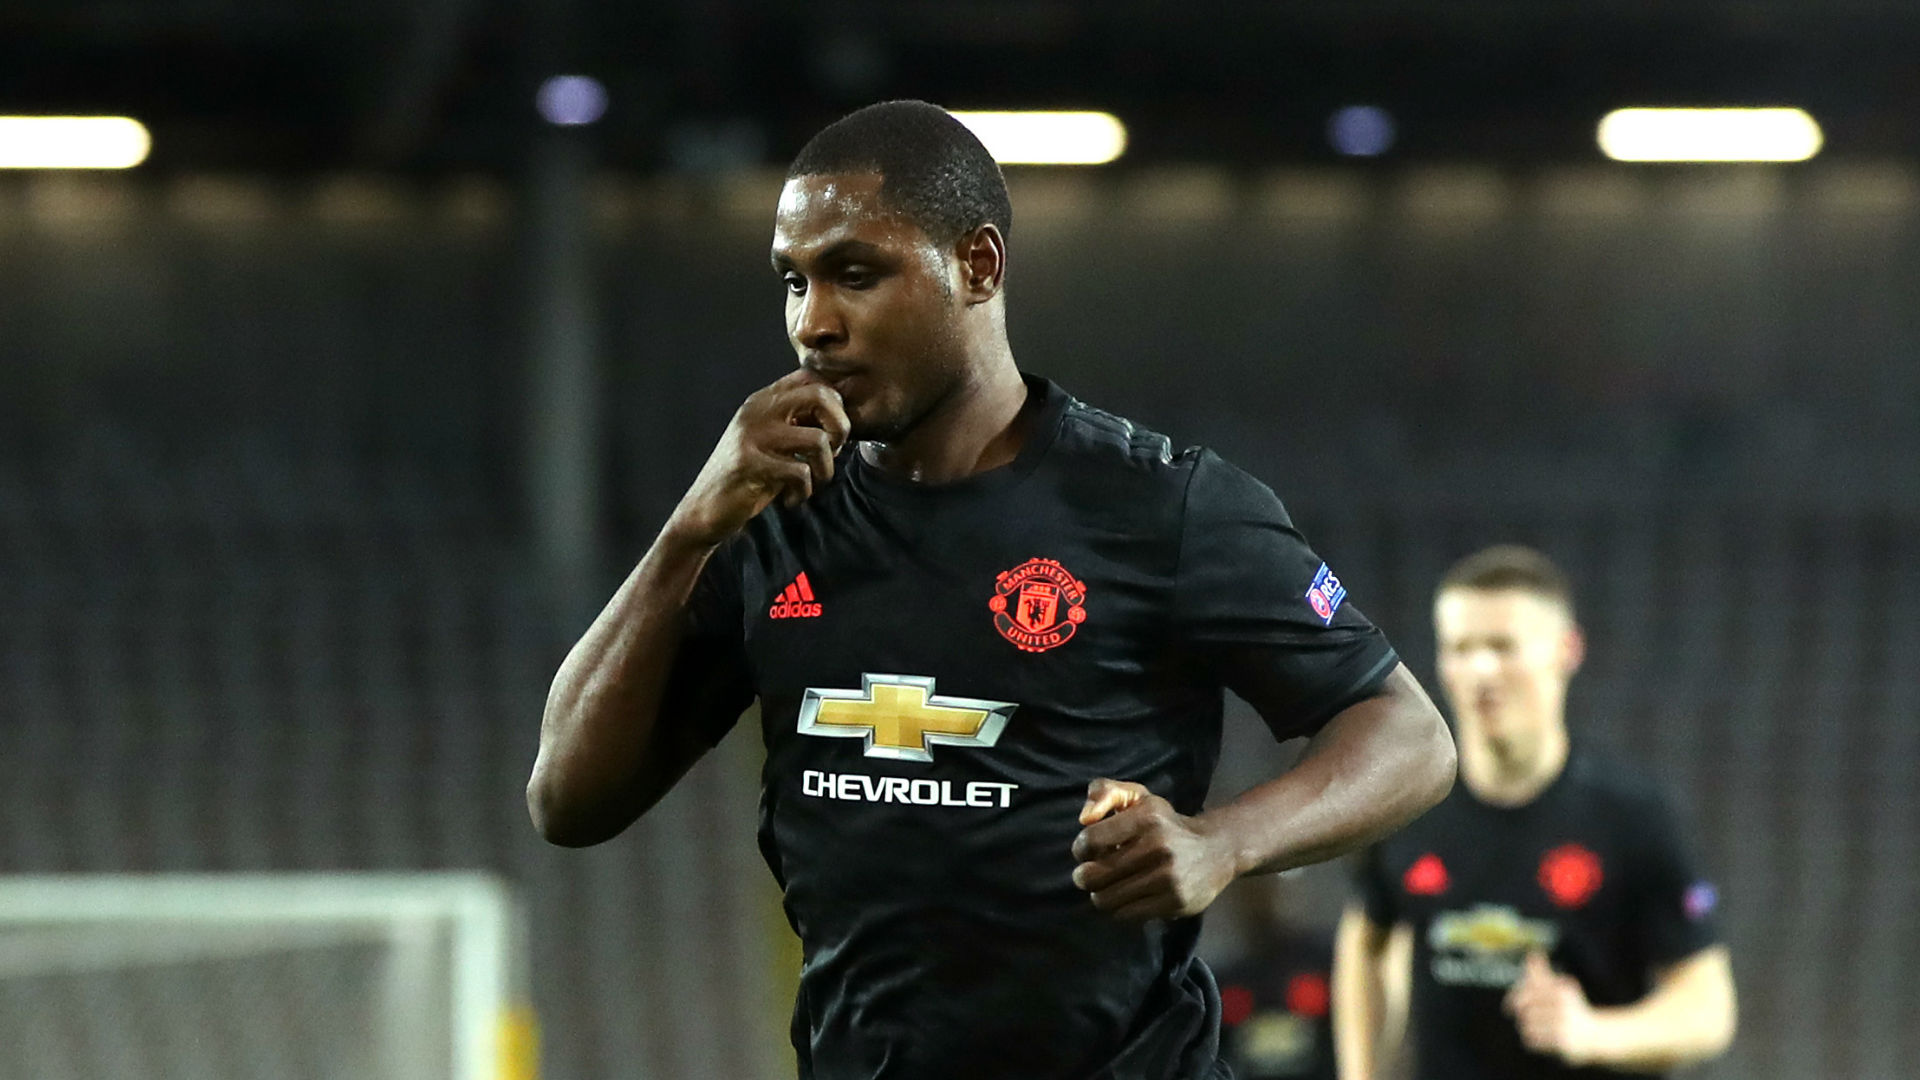 Manchester United's Ighalo reminds me of Papiss Cisse - Darren Bent